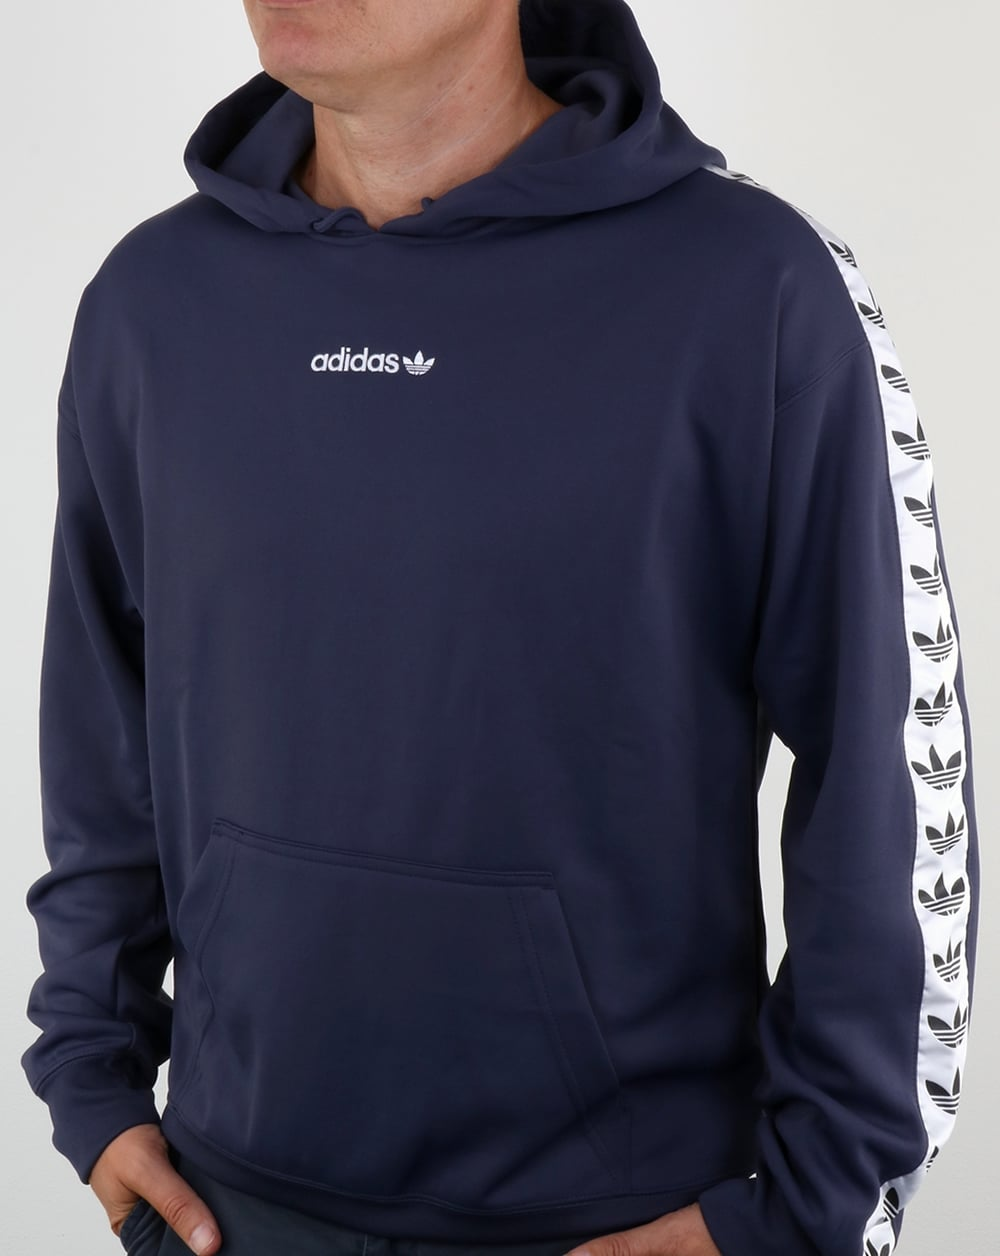 Adidas Originals TNT Tape Hoody Trace BlueWhite